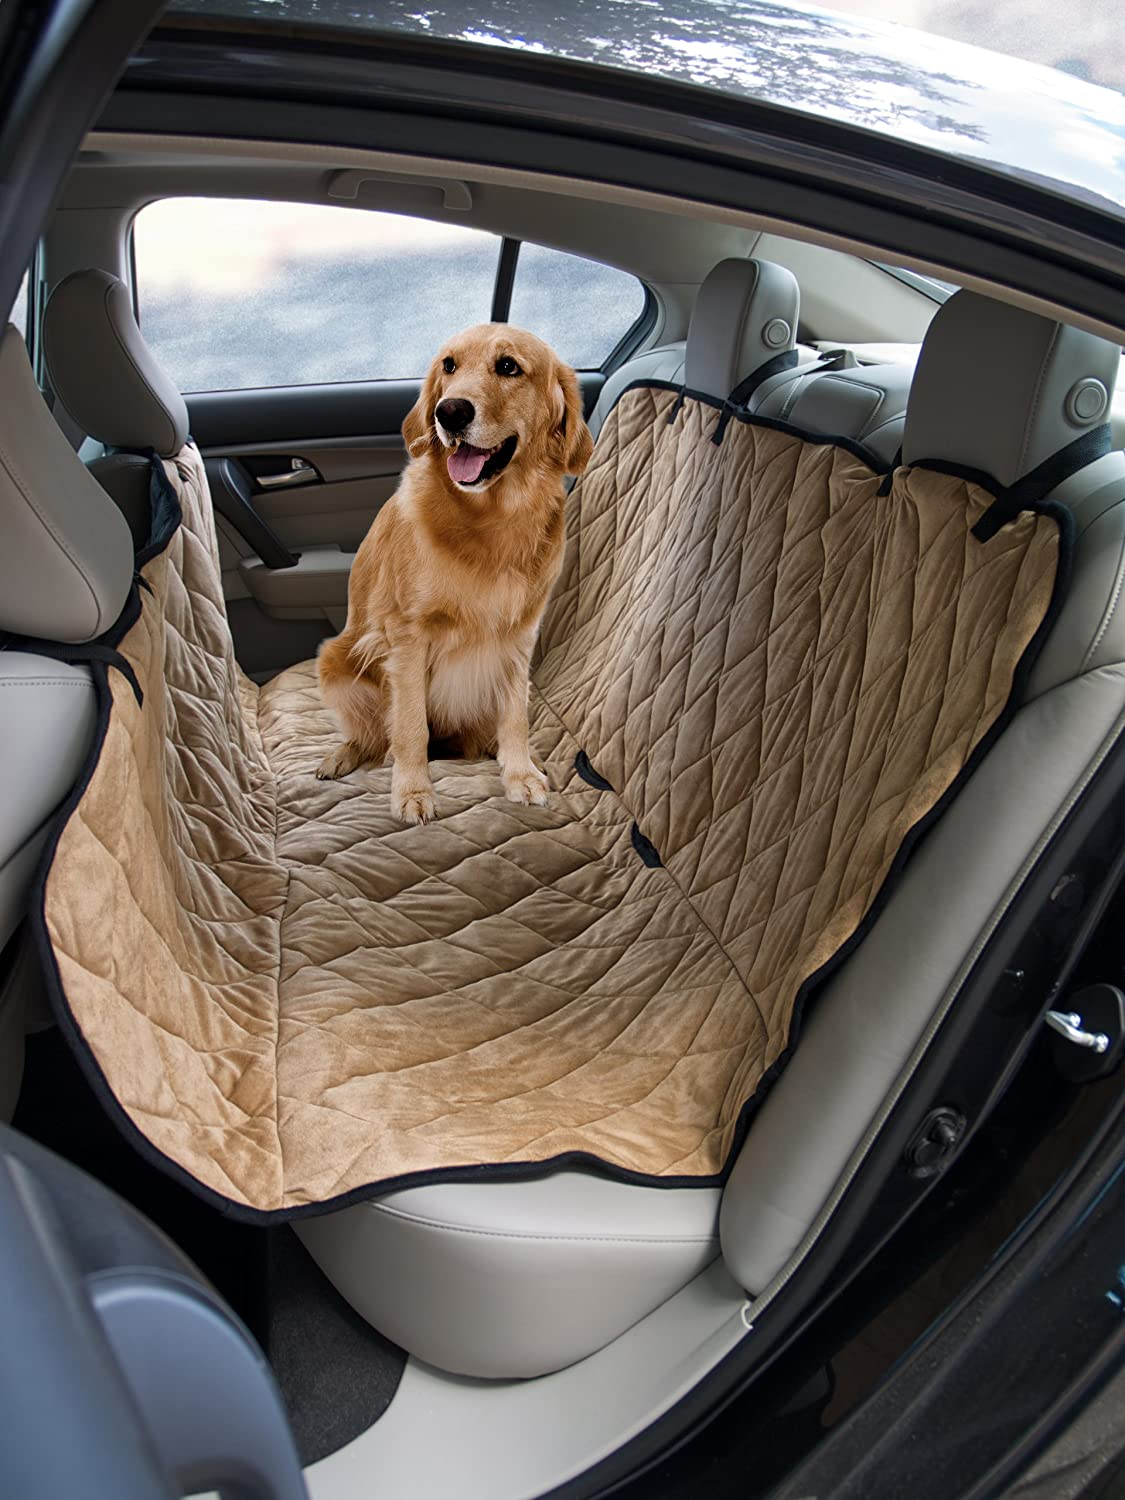 amazon     sonnyridge dog hammock  u0026 seat covers for dogs  this pet car seat cover protects your back seat from dirt hair or dander  amazon     sonnyridge dog hammock  u0026 seat covers for dogs  this      rh   amazon